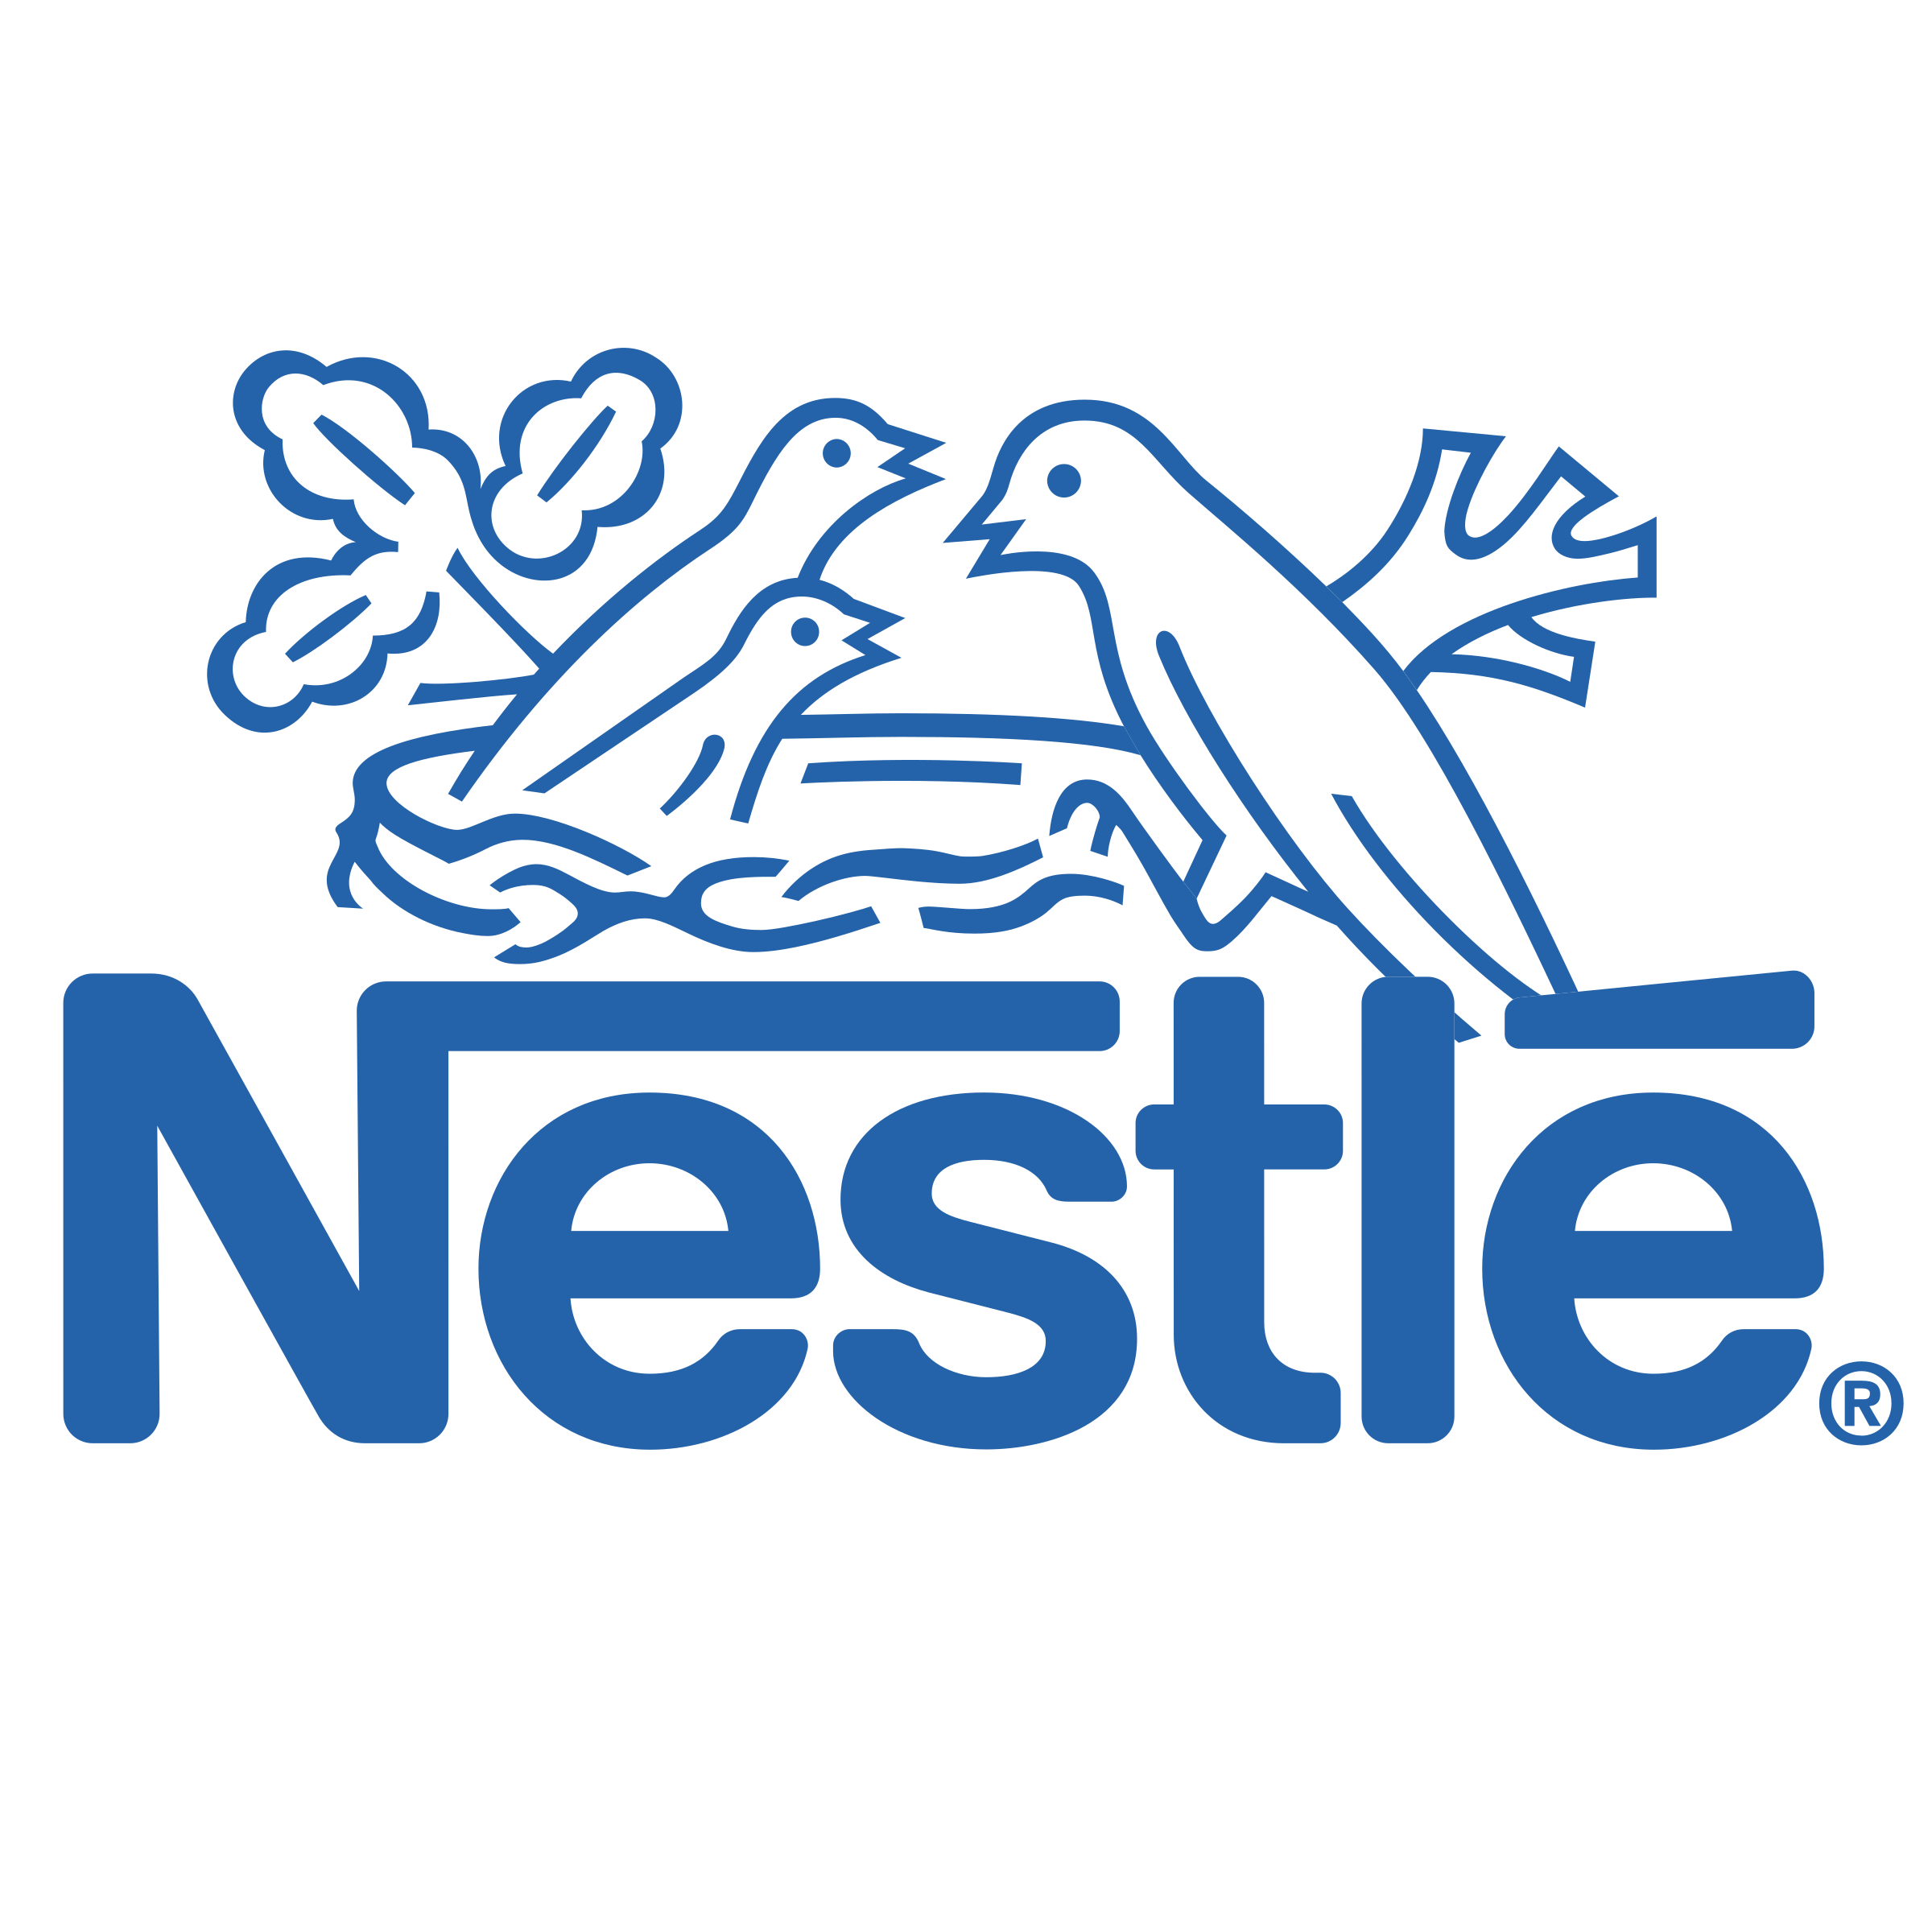 Nestle 4 Logo Png Transparent The Leadership Center For Excellence